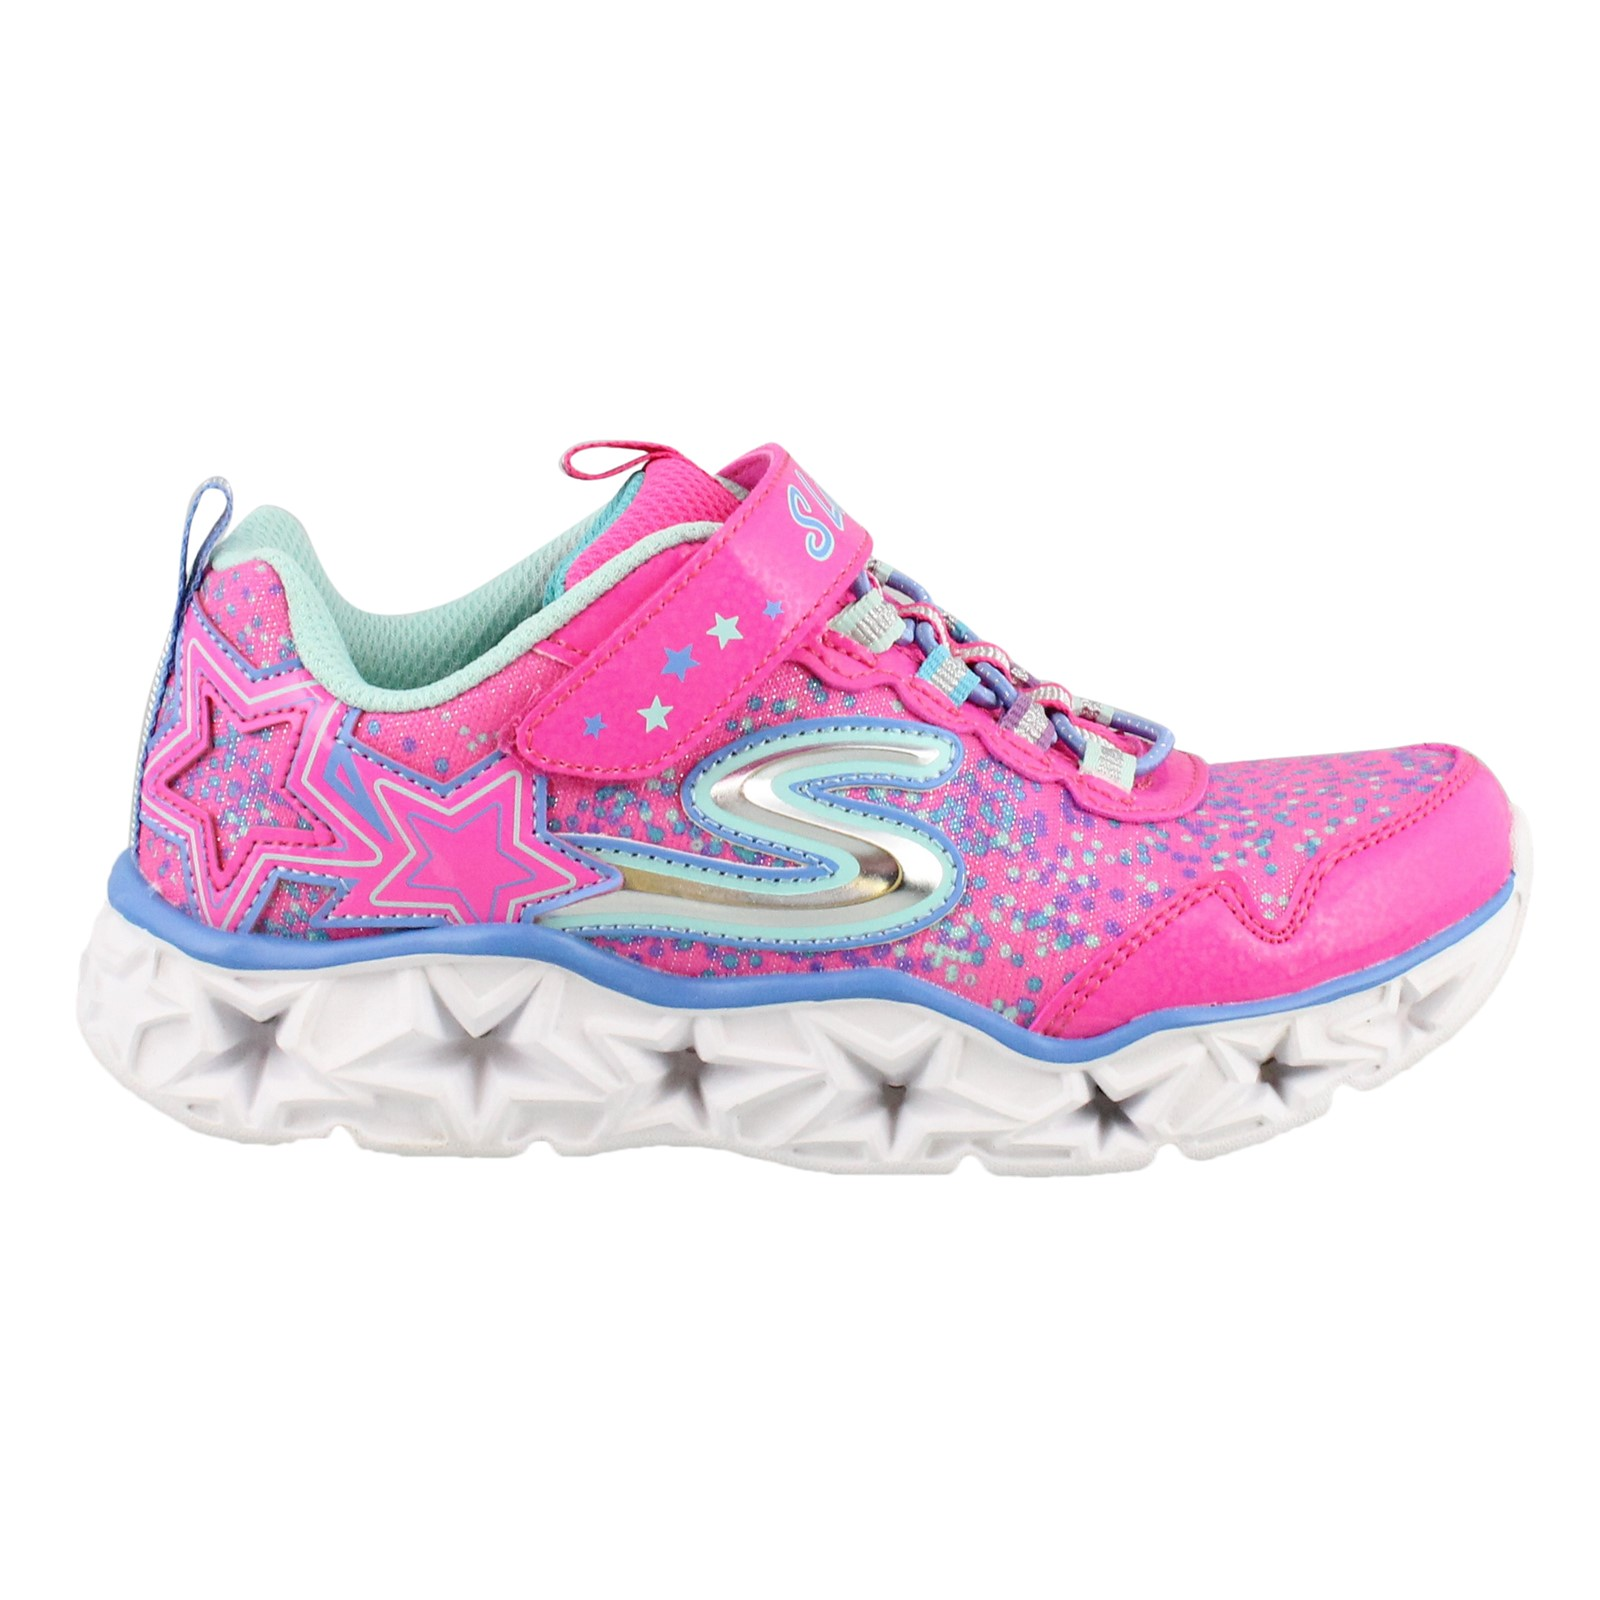 Girl's Skechers, S Lights Galaxy Lights Sneakers